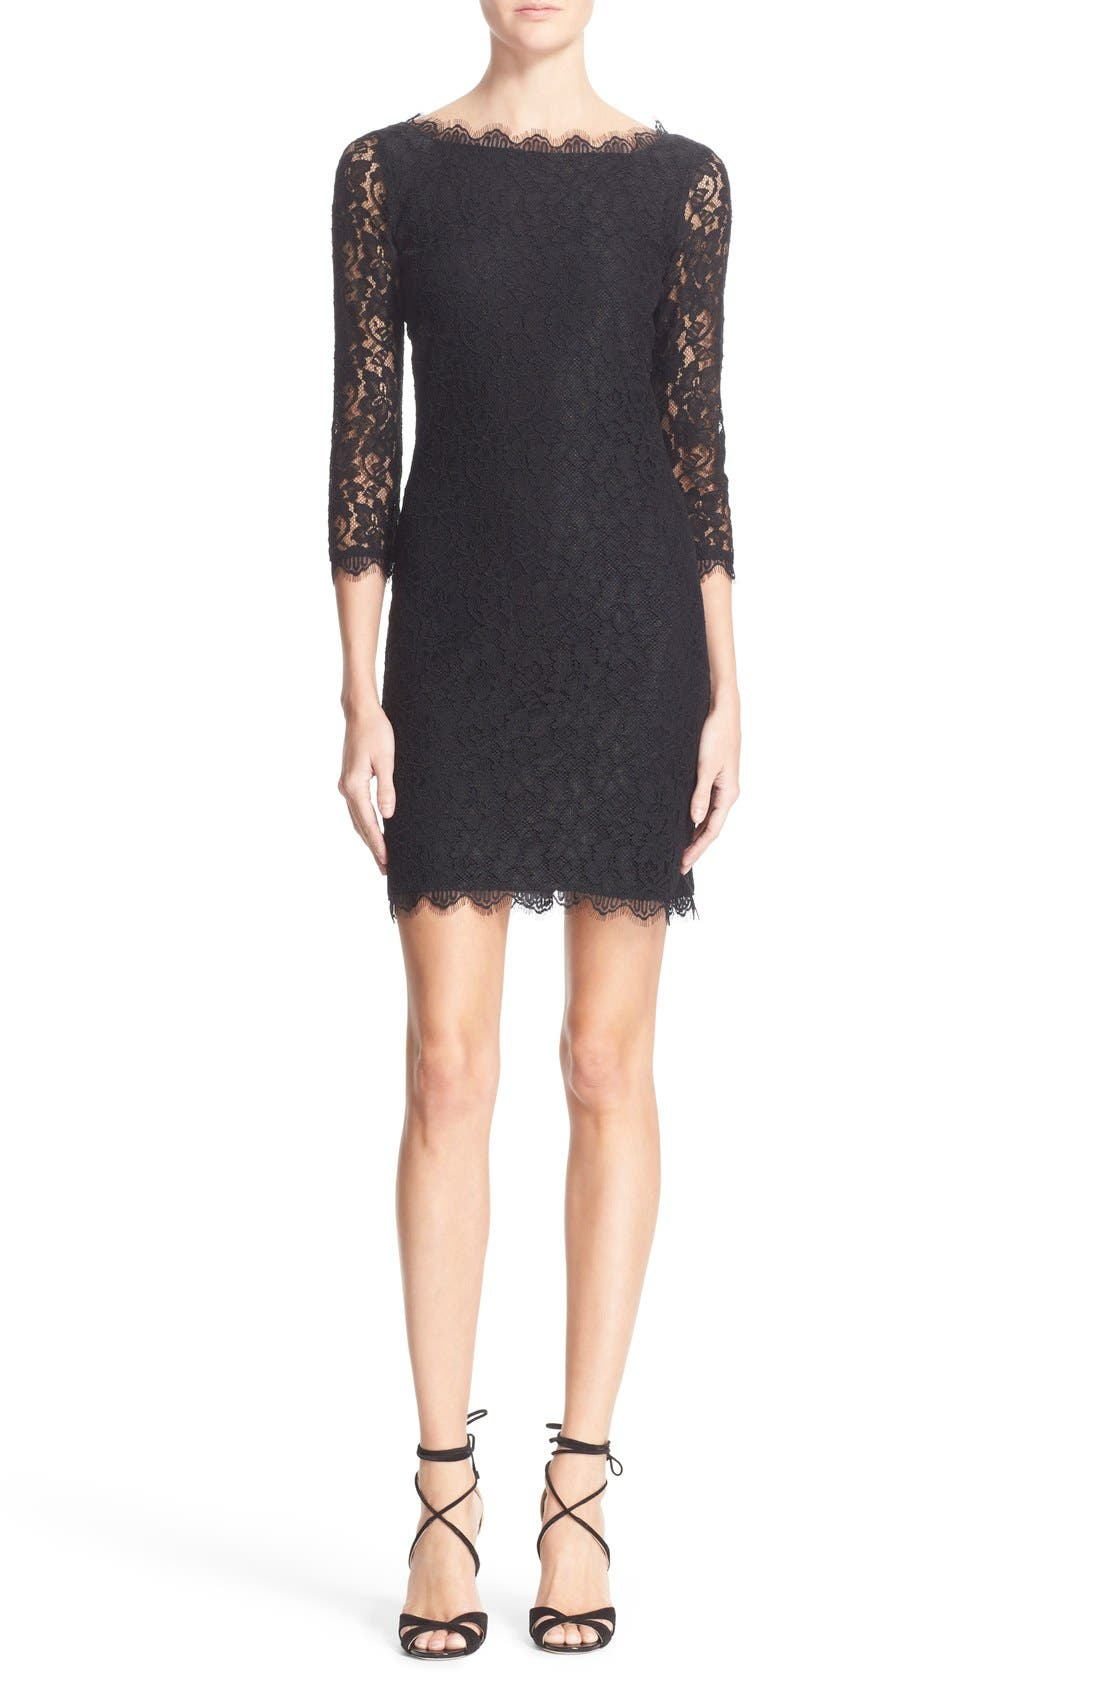 Alternate Image 1 Selected - Diane von Furstenberg 'Zarita' Lace Sheath Dress